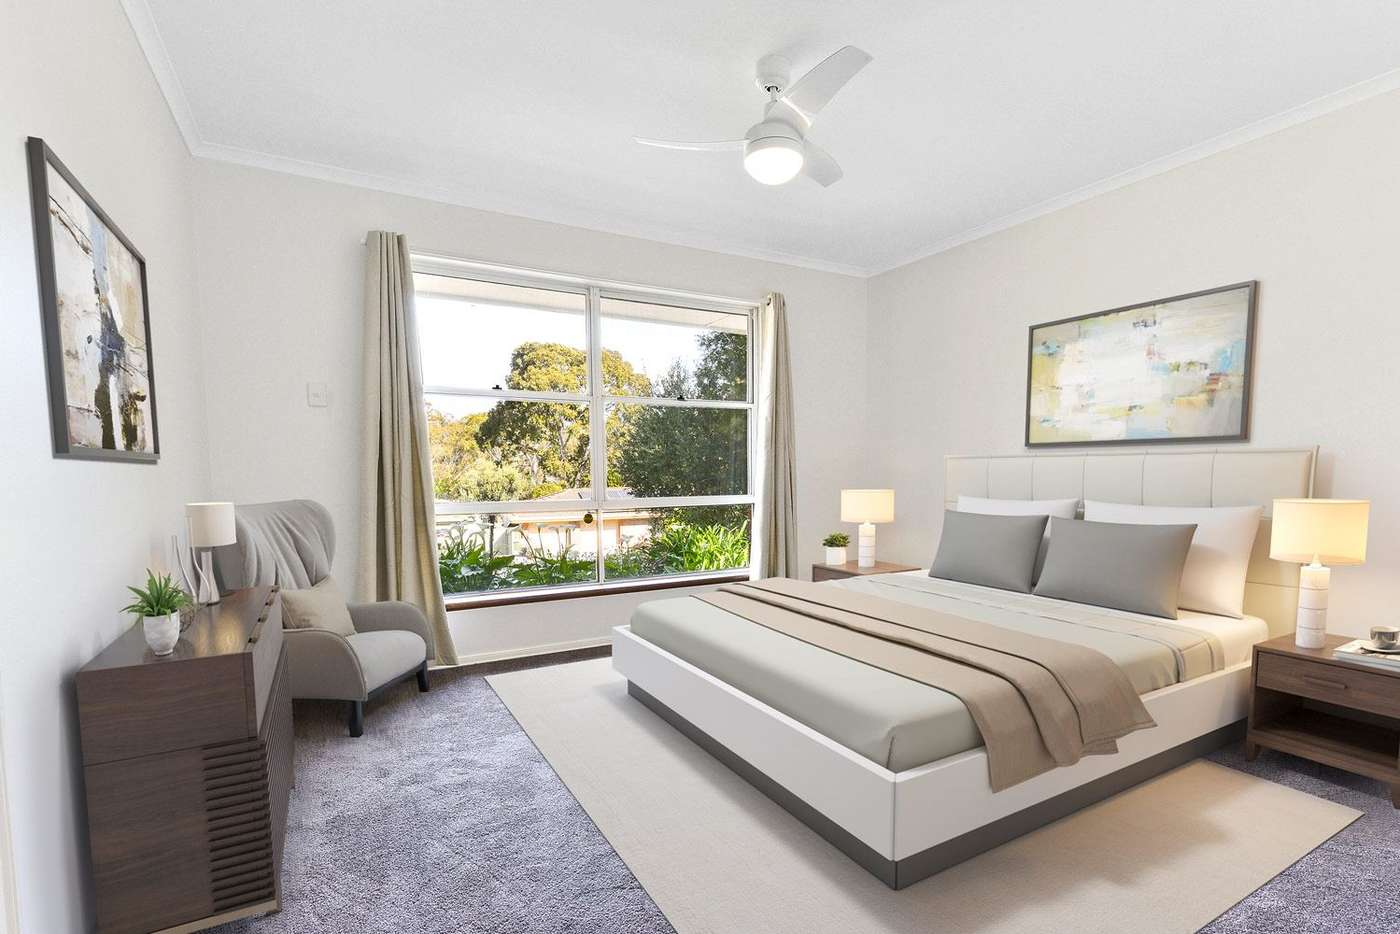 Fifth view of Homely house listing, 17 Musgrave Avenue, Aberfoyle Park SA 5159